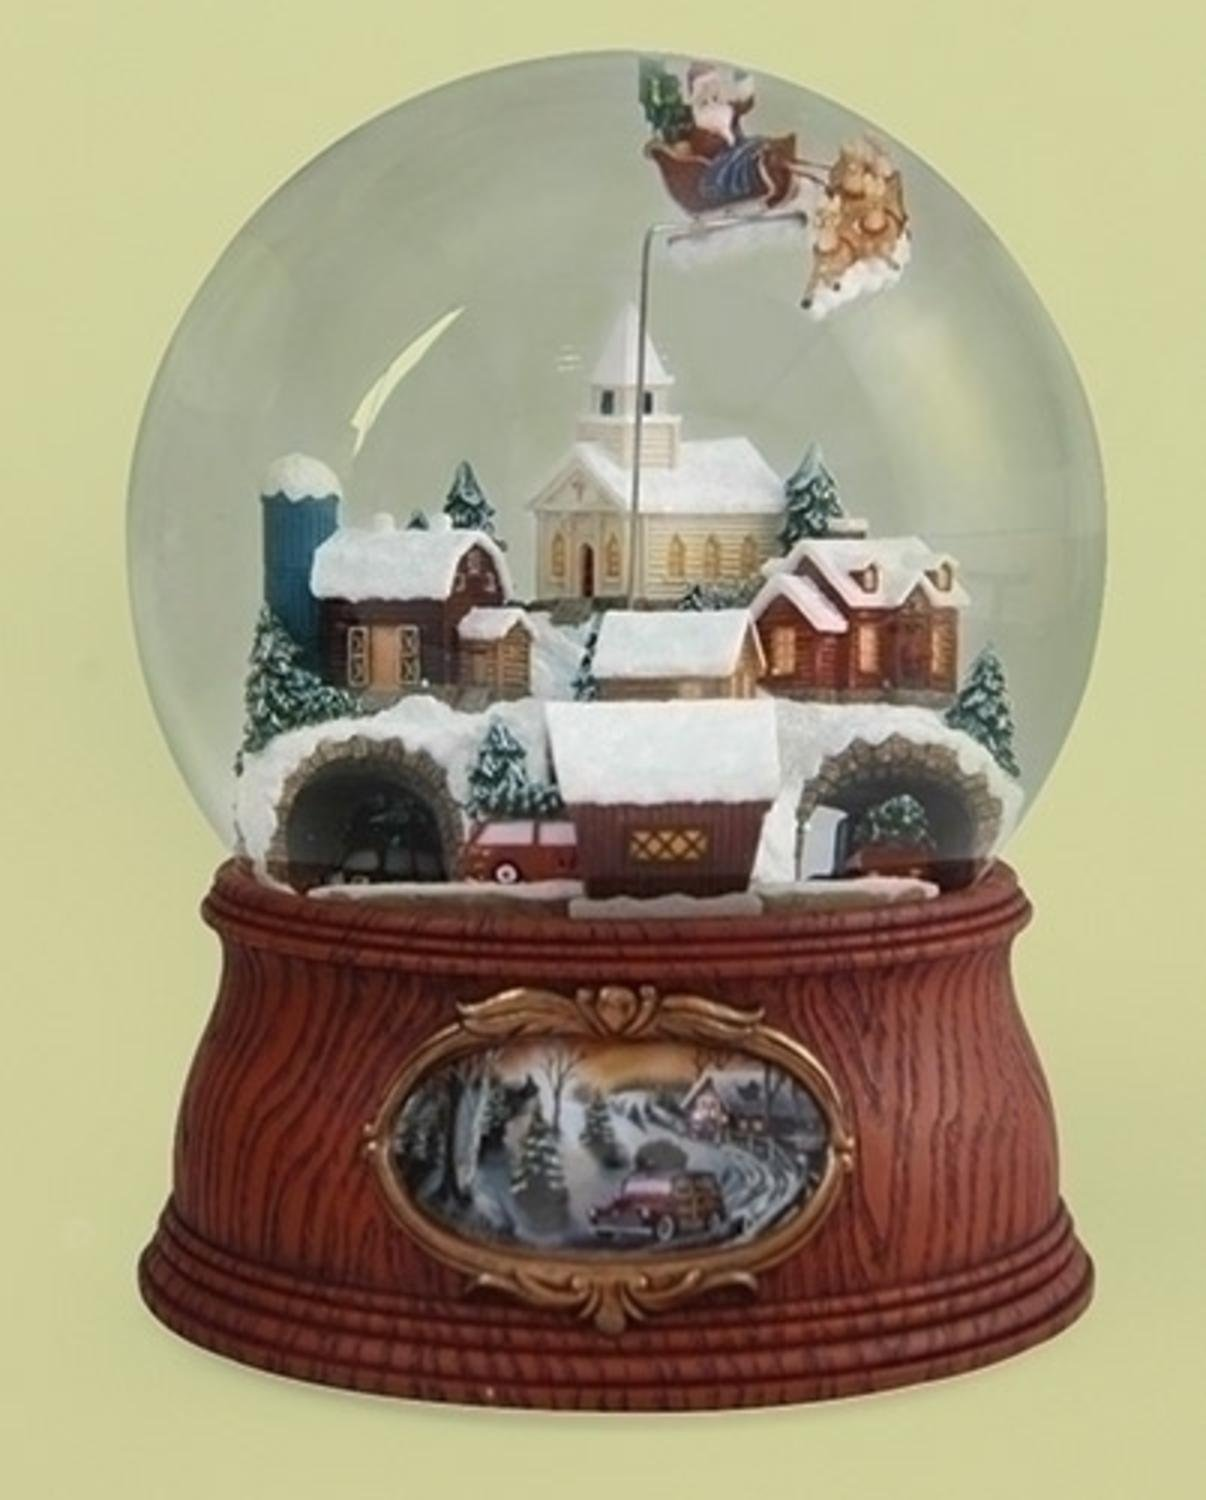 7.5'' Musical Santa Flying Over Town with Rotating Cars Decorative Christmas Glitterdome by Roman